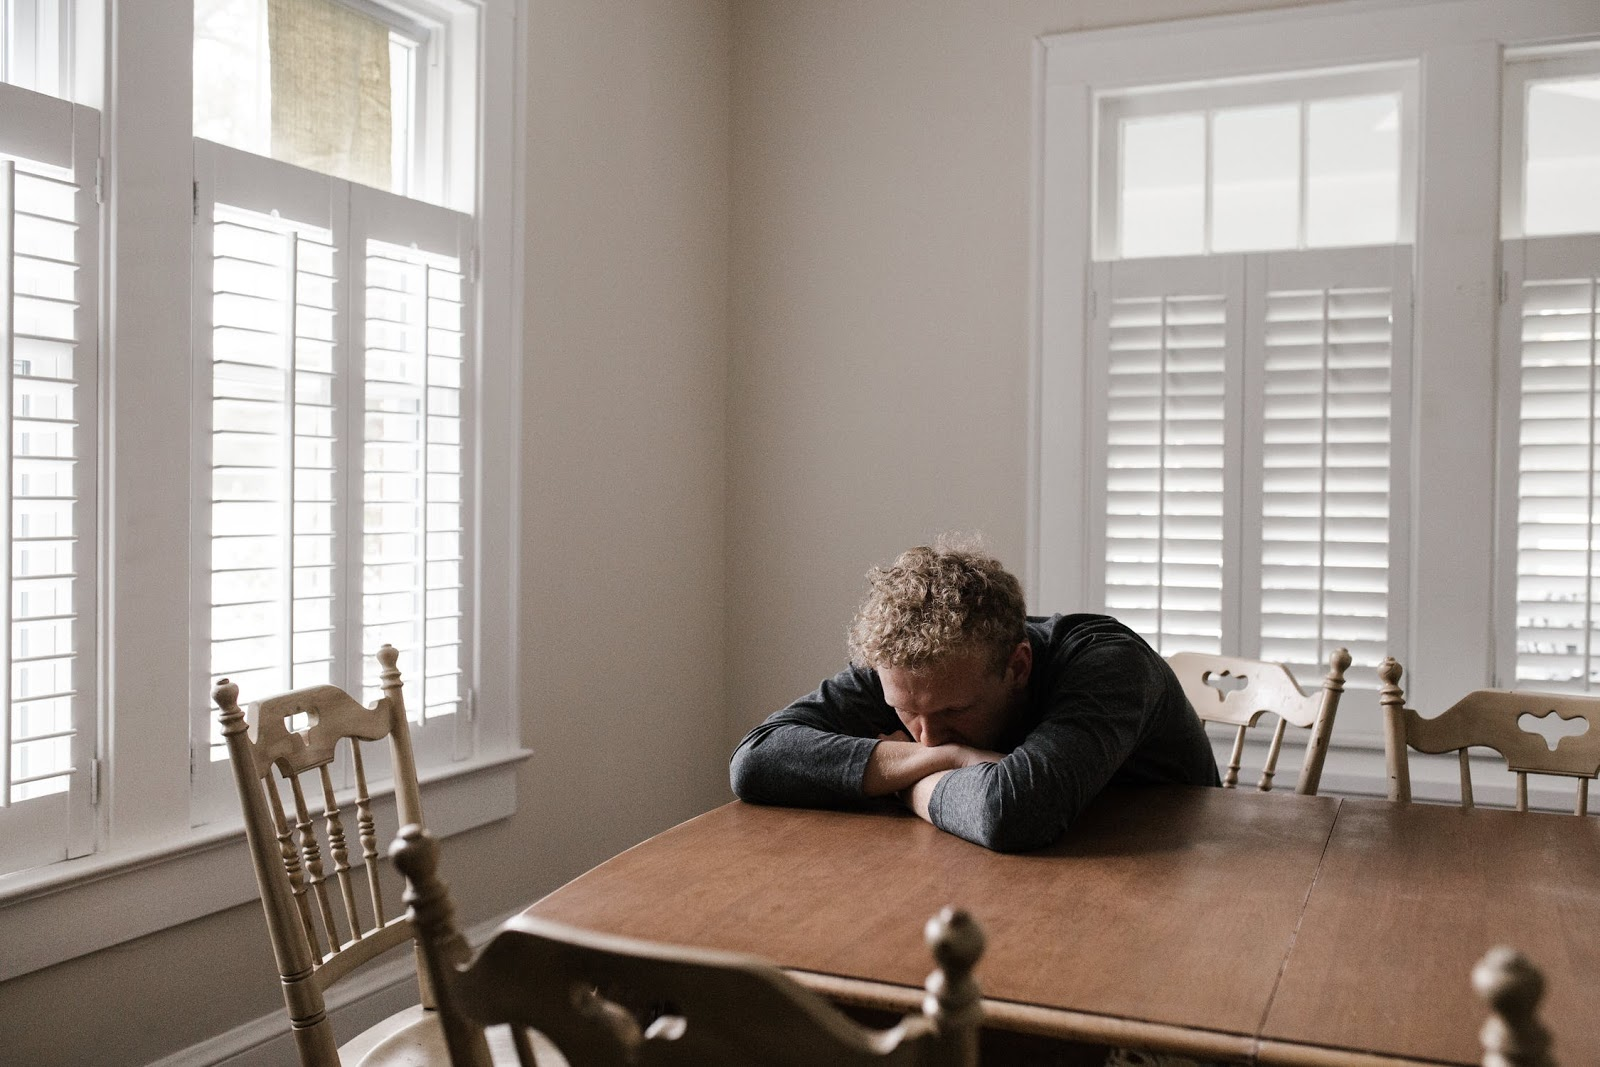 A disappointed man sitting at a dining room table with his head down.